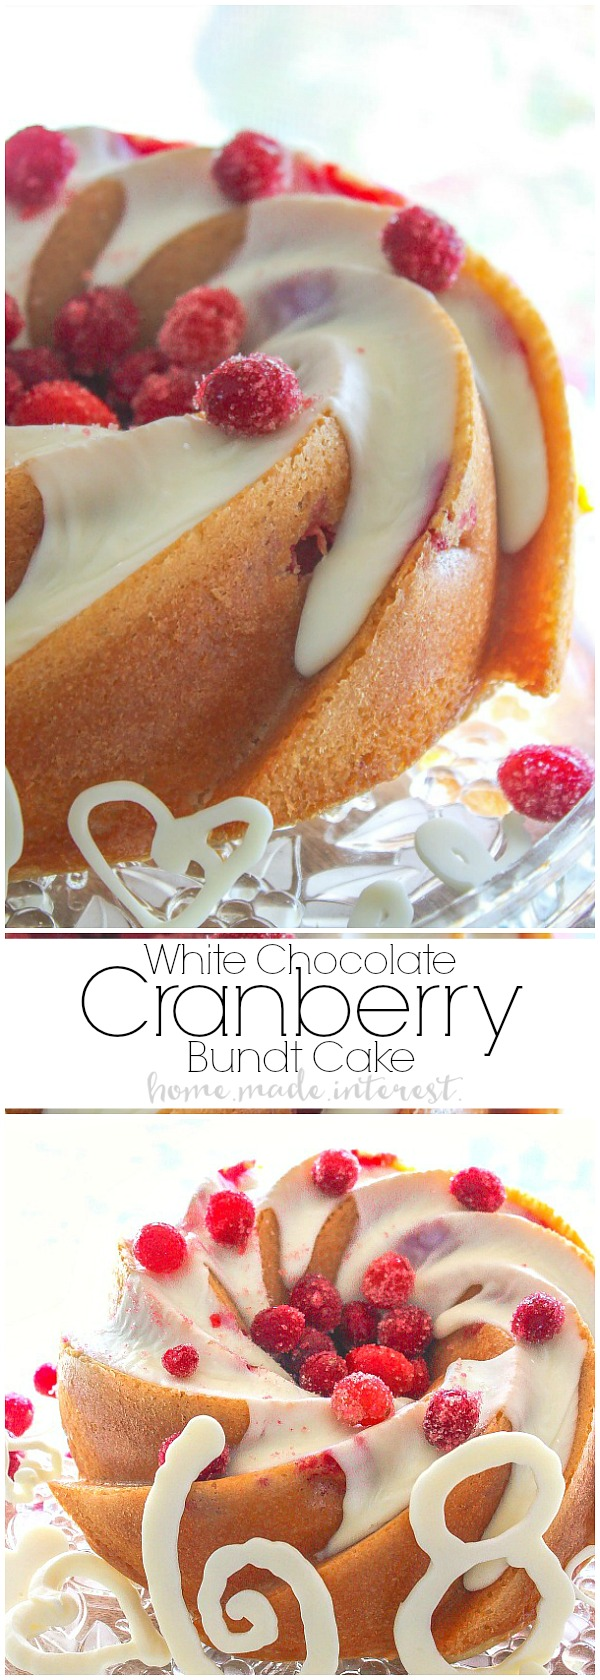 A white chocolate cranberry cake made in a gorgeous heritage bundt pan. This white chocolate cranberry cake is a quick and easy cake recipe made from boxed cake mix. Add in a few extra ingredients and you have a super moist and delicious cake!